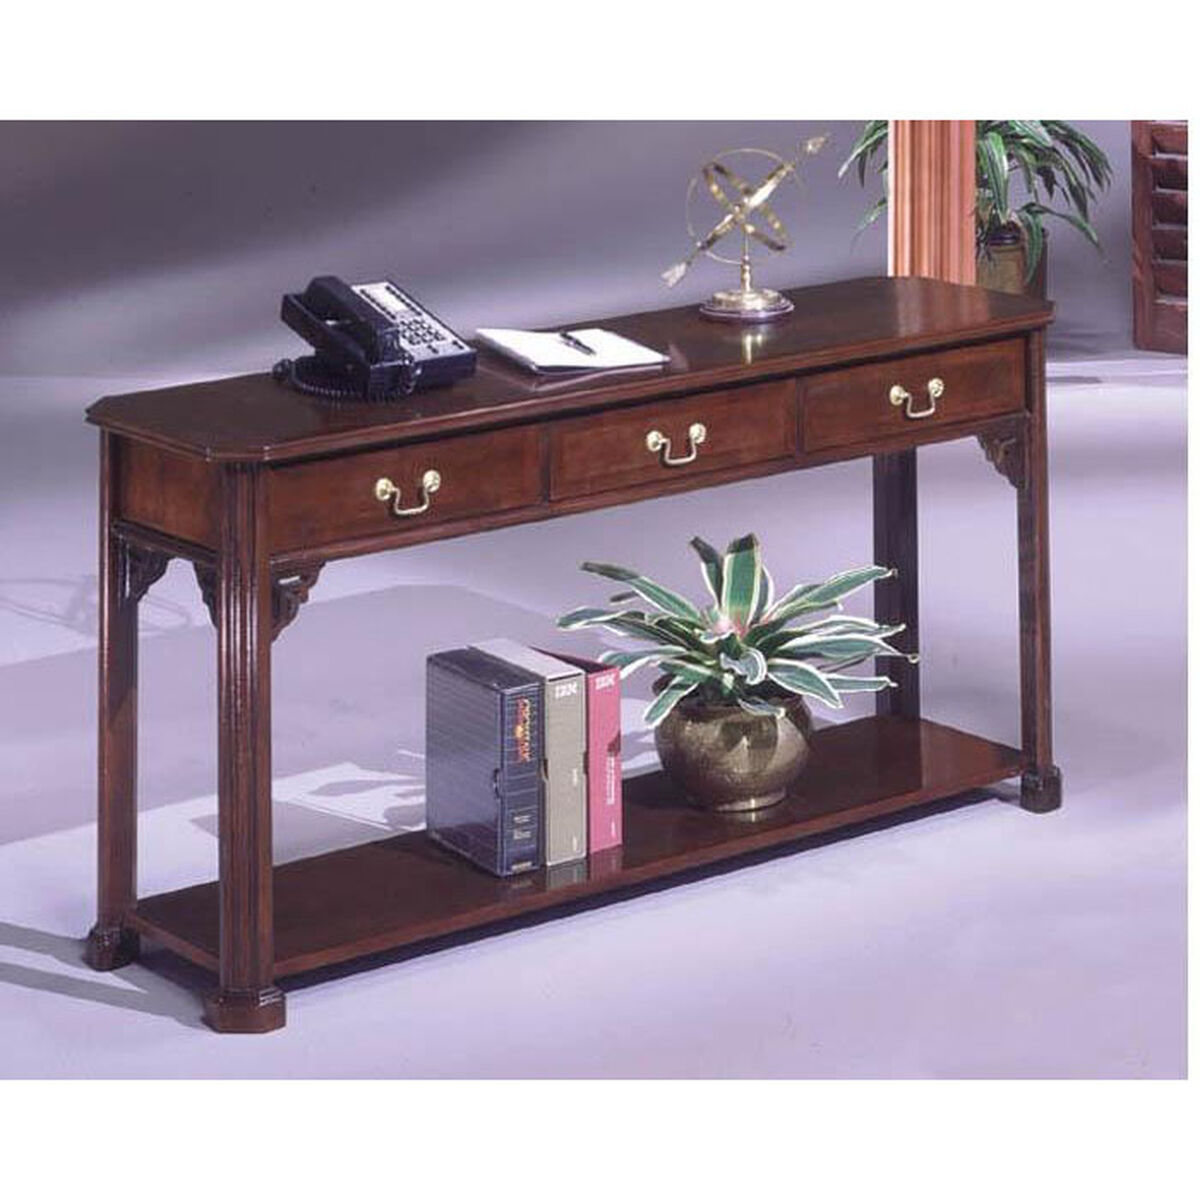 Sofa table engraved mahogany 7350 82 bizchair our governors sofa table engraved executive mahogany is on sale now watchthetrailerfo